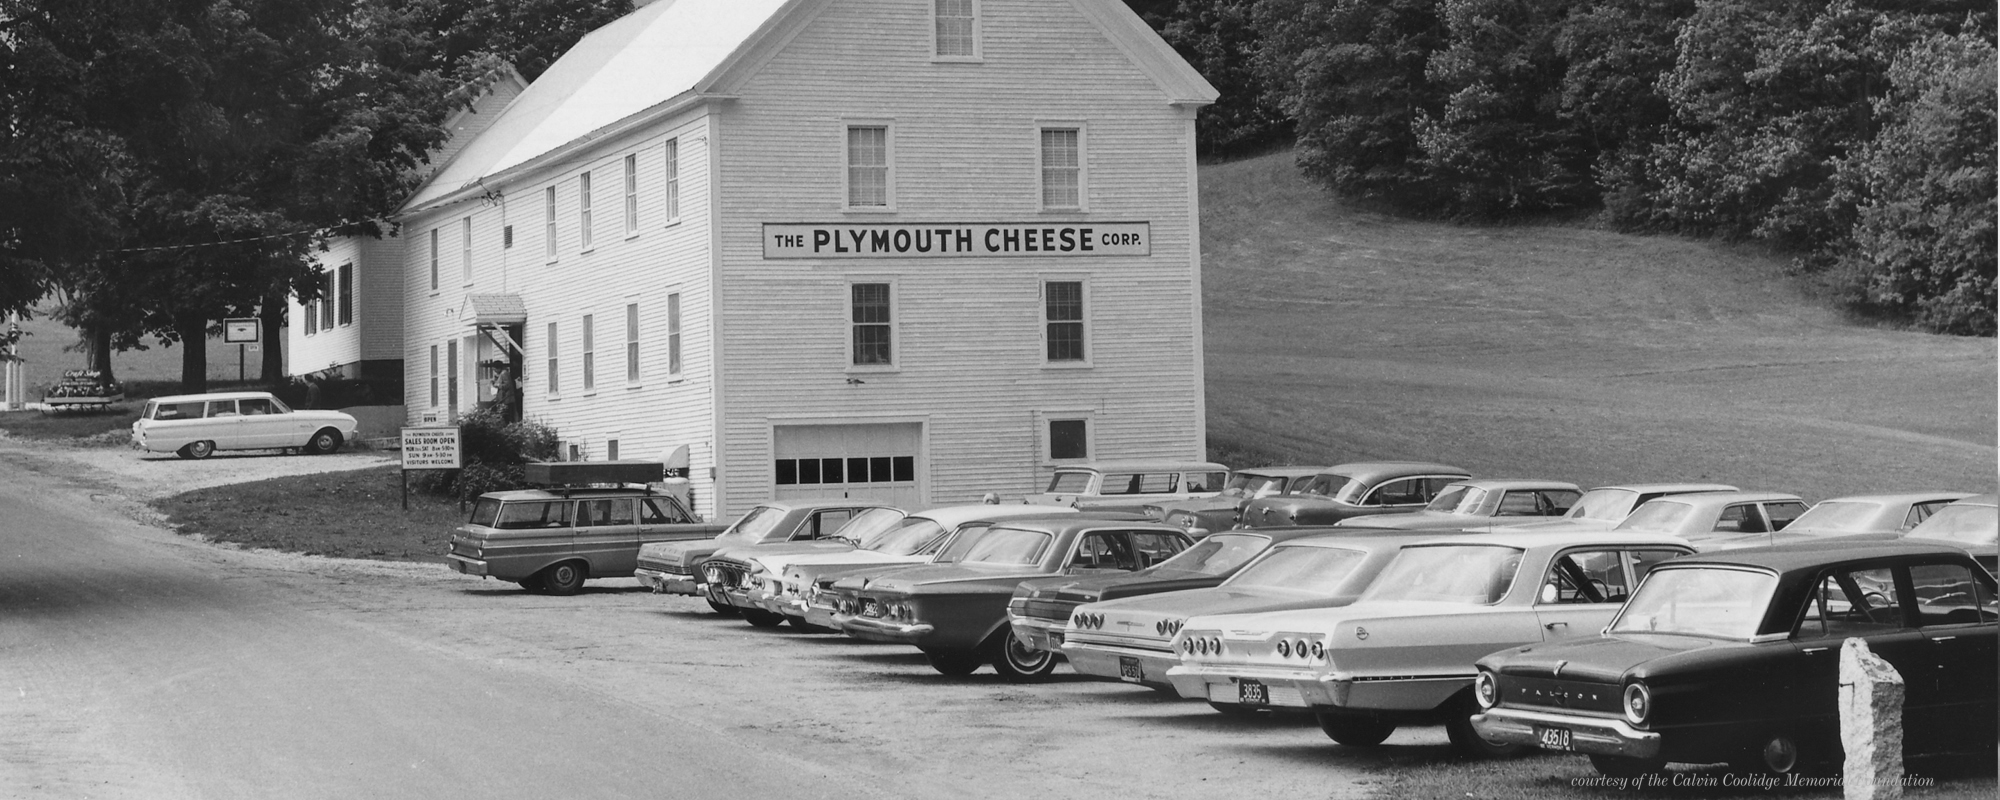 Historical picture of the plymouth cheese corp, photo credit to plymouth artisan cheese